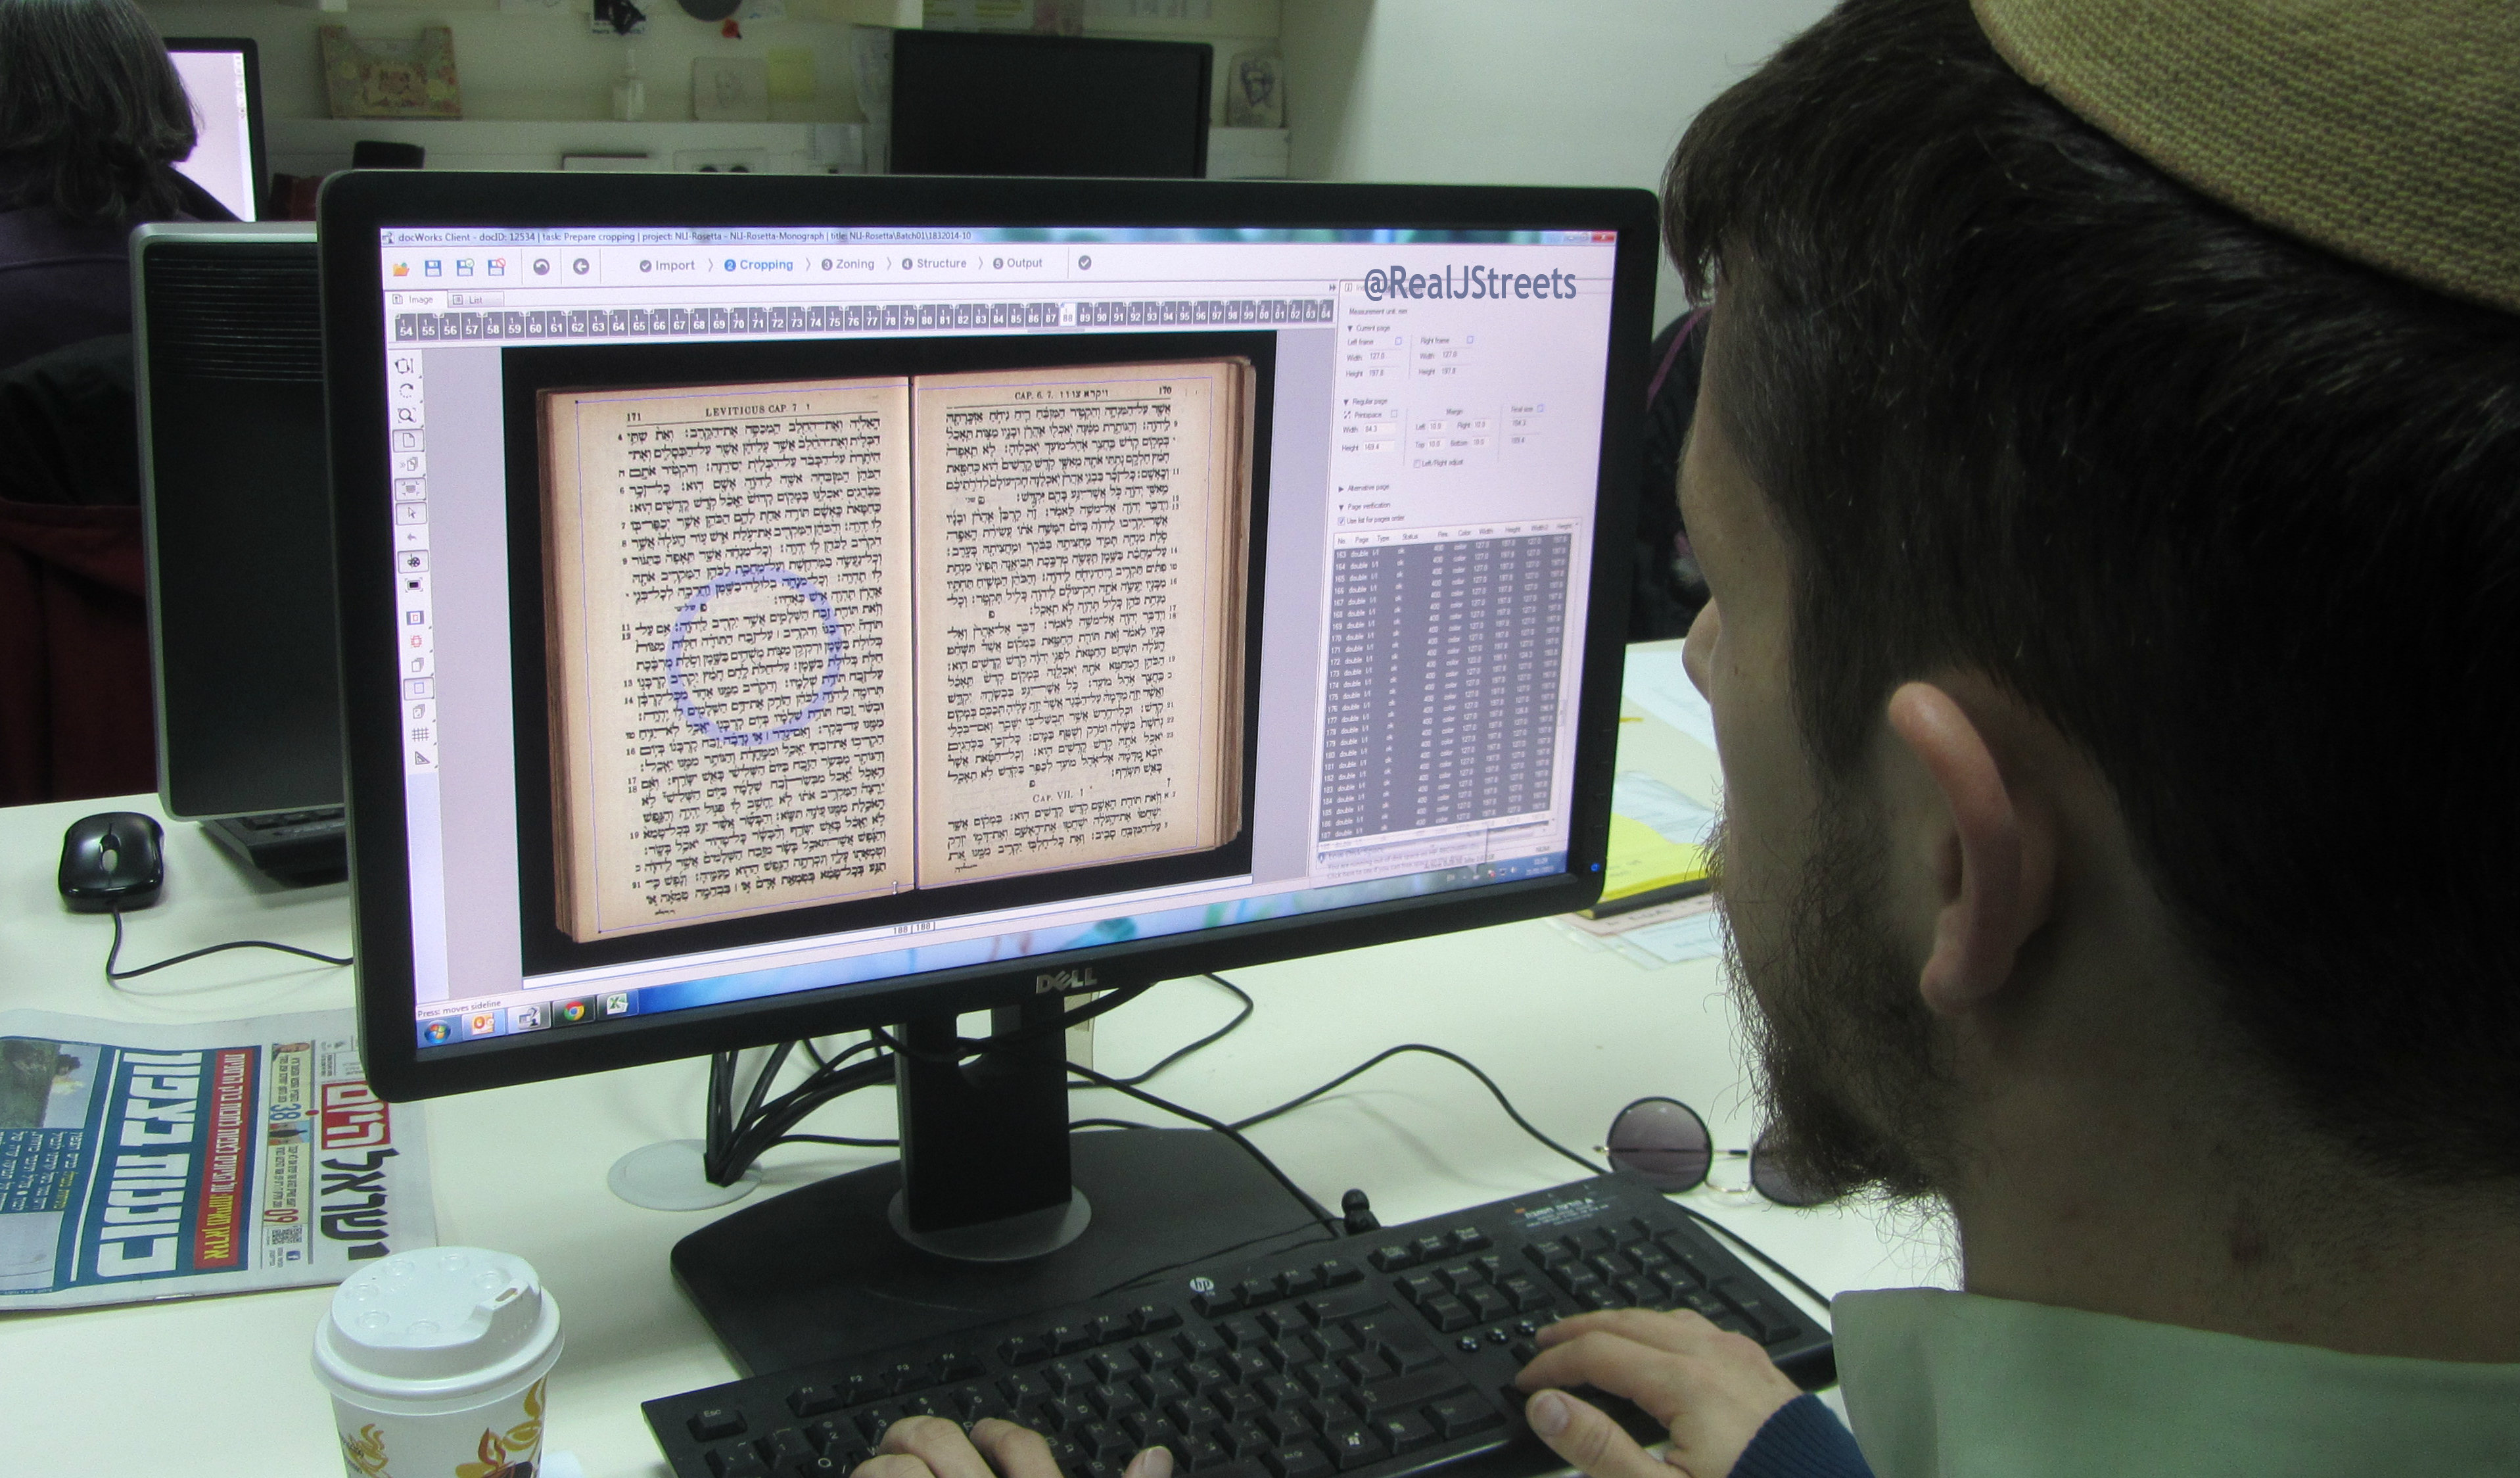 image digital screen with researcher reading